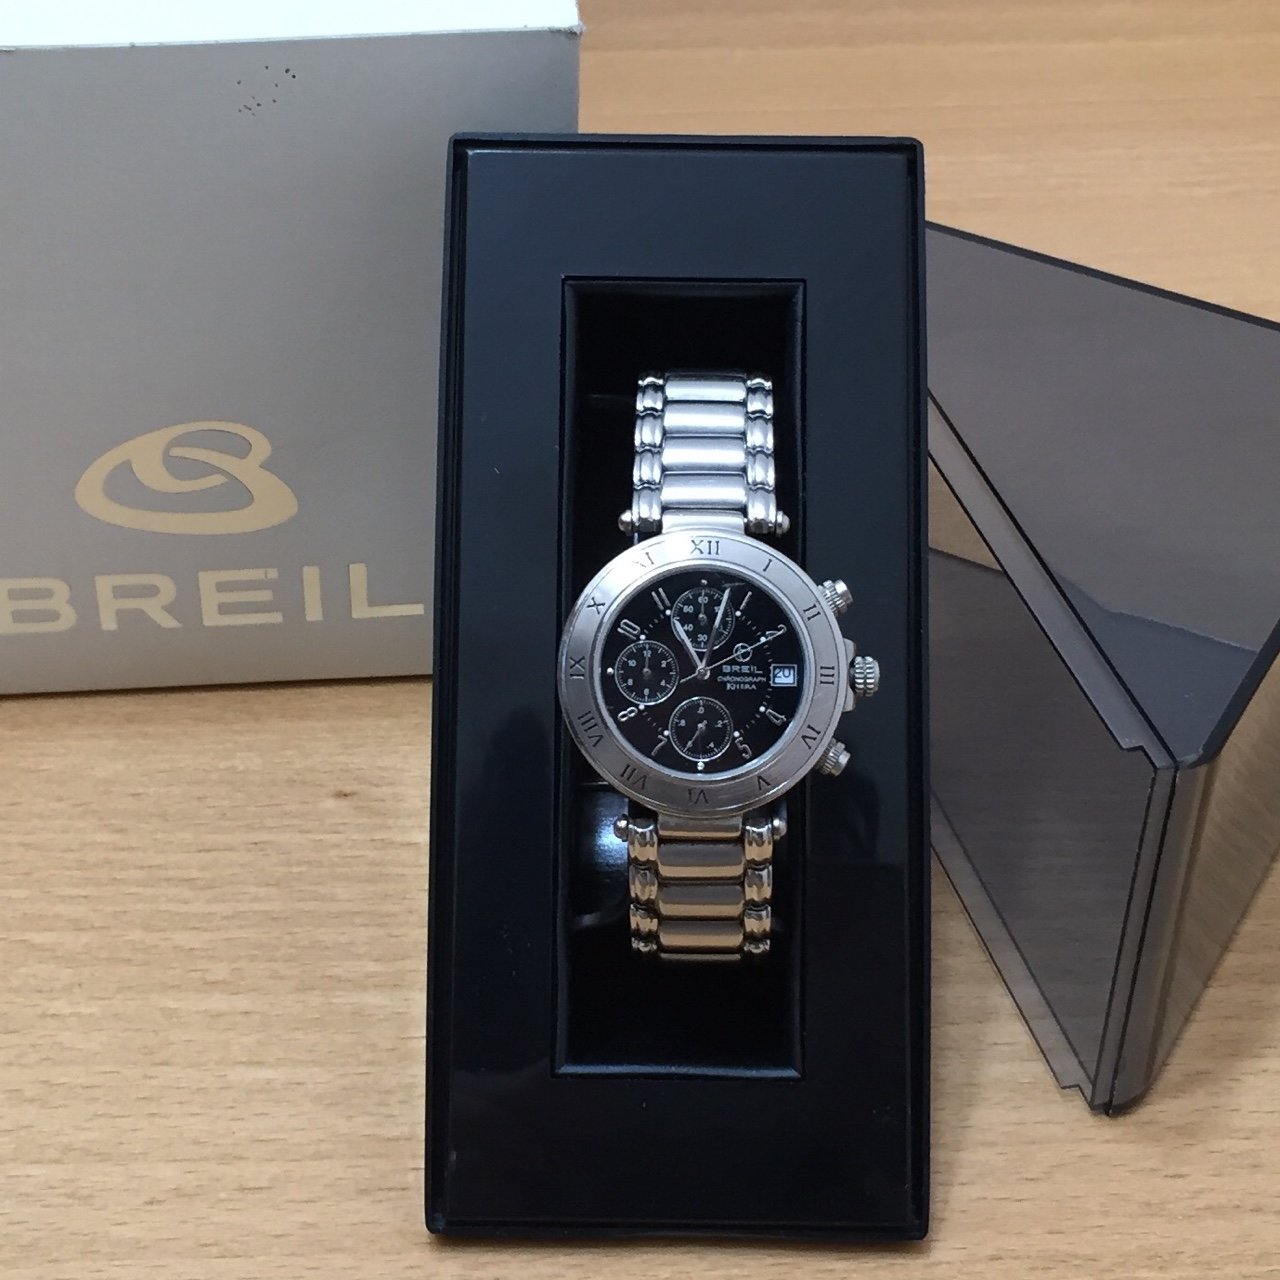 best online fantastic savings best value Orologio originale Breil, edizione Chronograph... - Depop